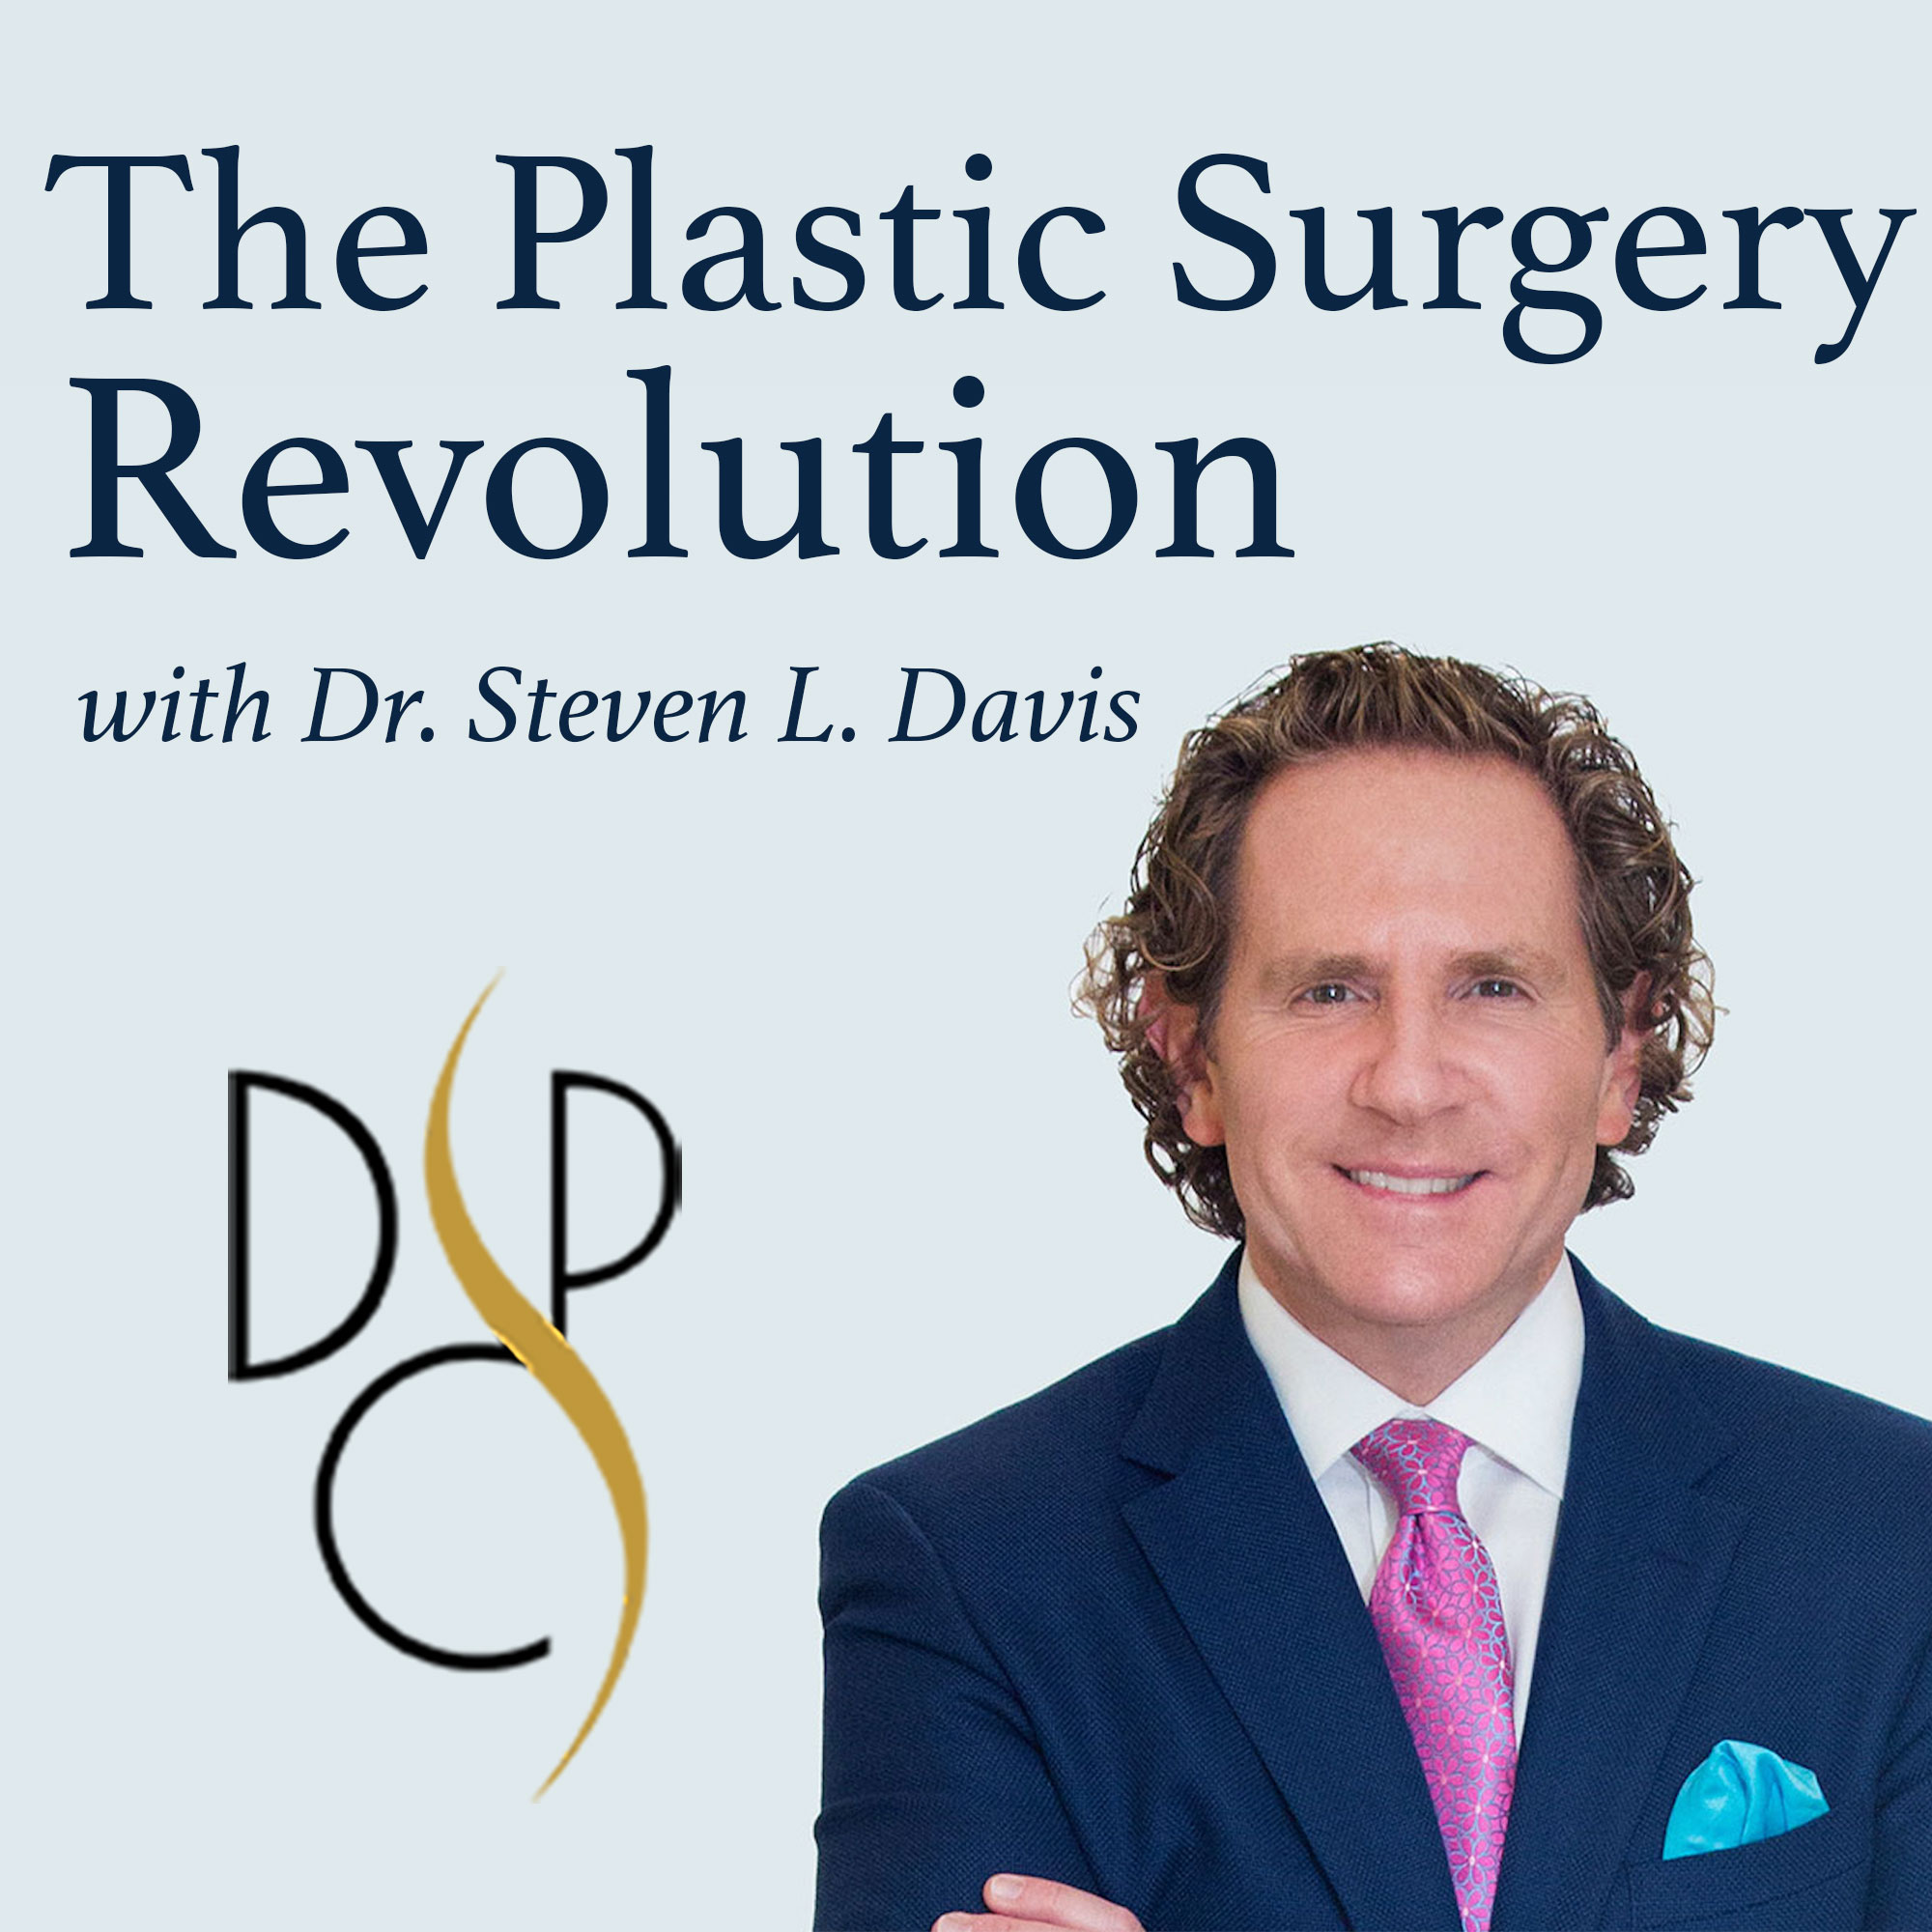 The Plastic Surgery Revolution